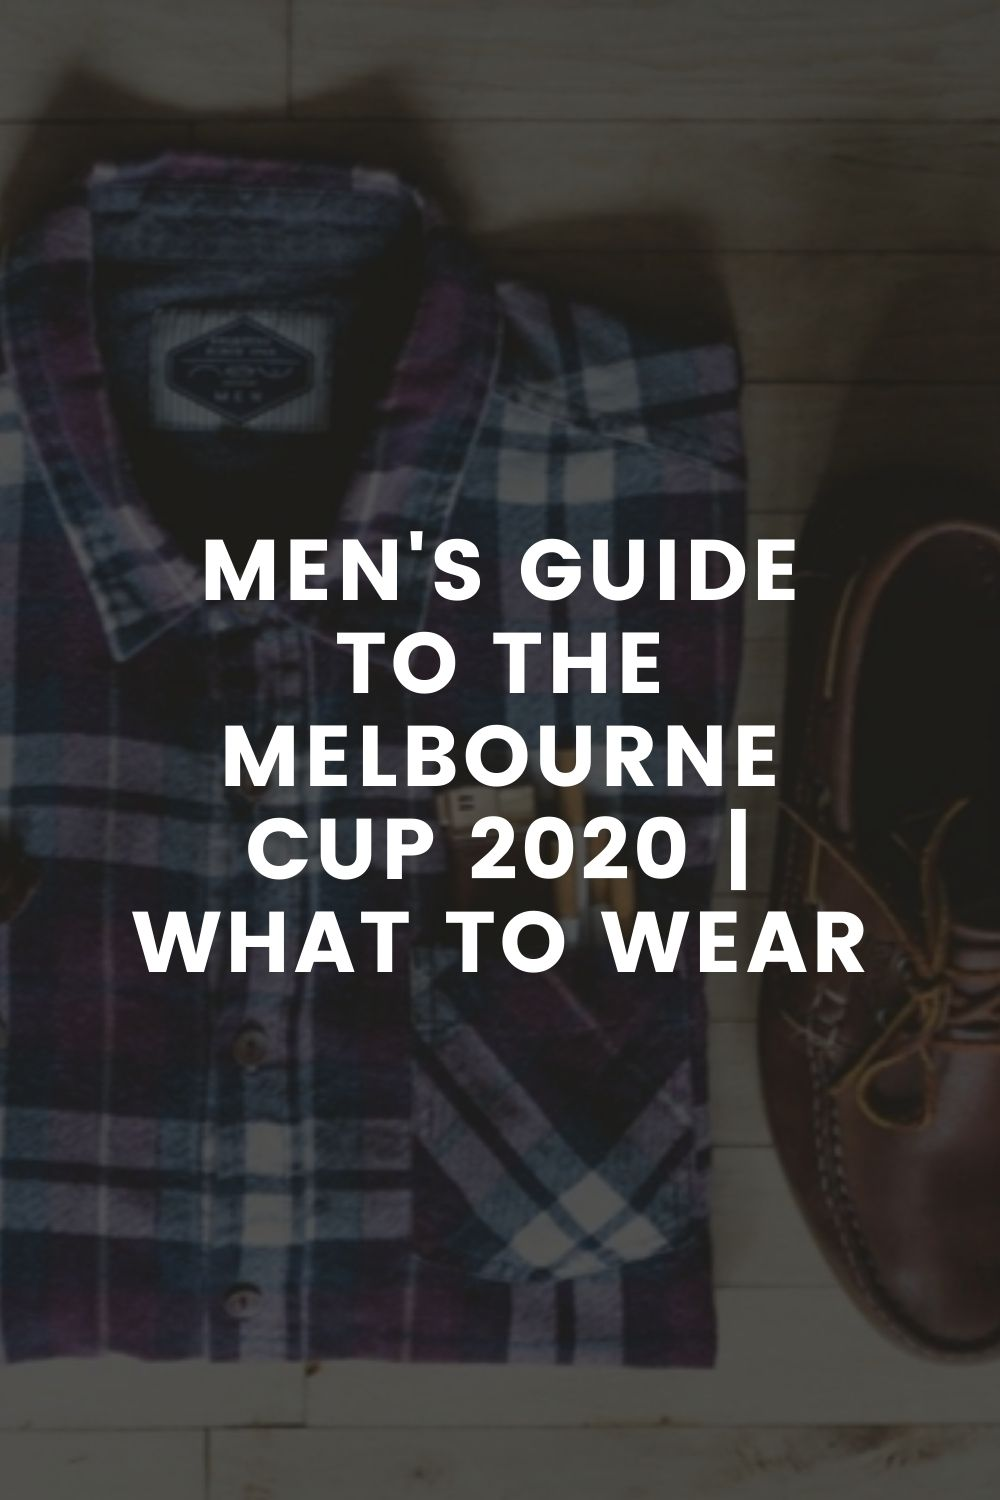 Men's Guide to the Melbourne Cup 2020 | What to Wear